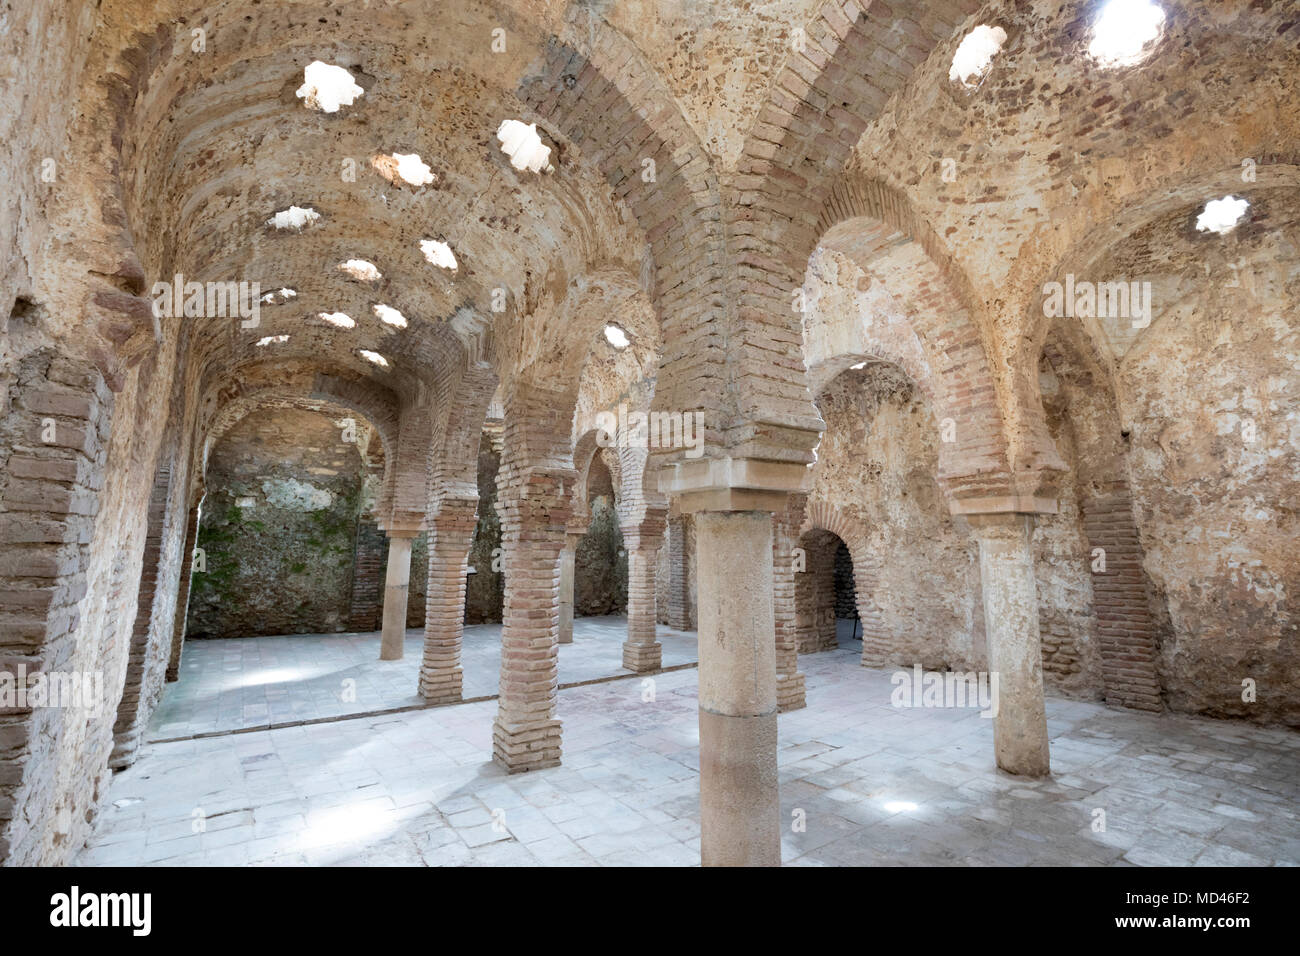 Baños Arabes Jerez Arab Baths Stock Photos And Arab Baths Stock Images Alamy